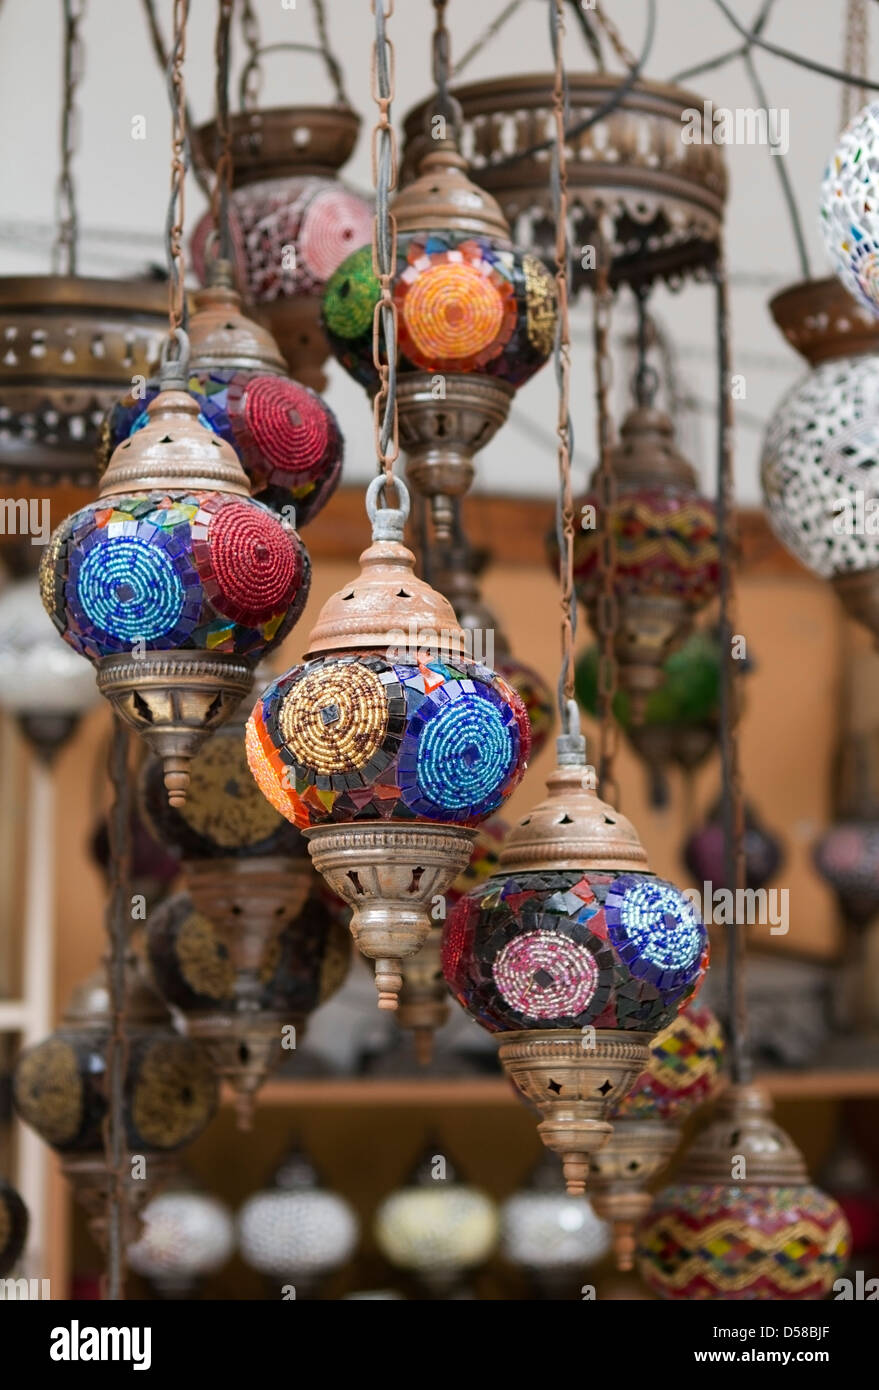 Turkish lamps stock photos turkish lamps stock images alamy turkish lamps chandelier for sale at the grand bazaar in istanbul turkey aloadofball Image collections